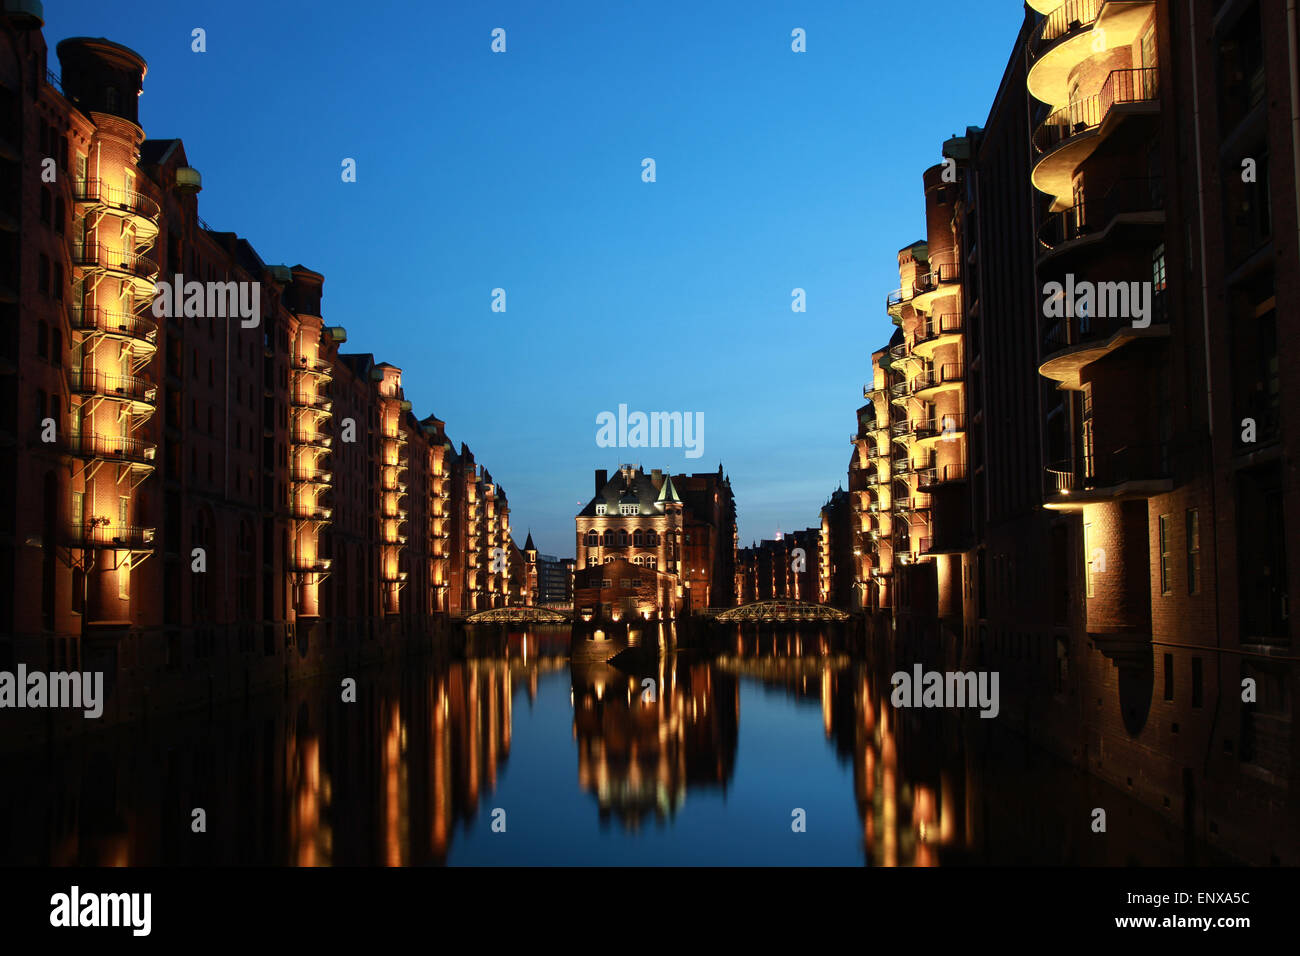 Hamburg Wasserschlösschen Stock Photo